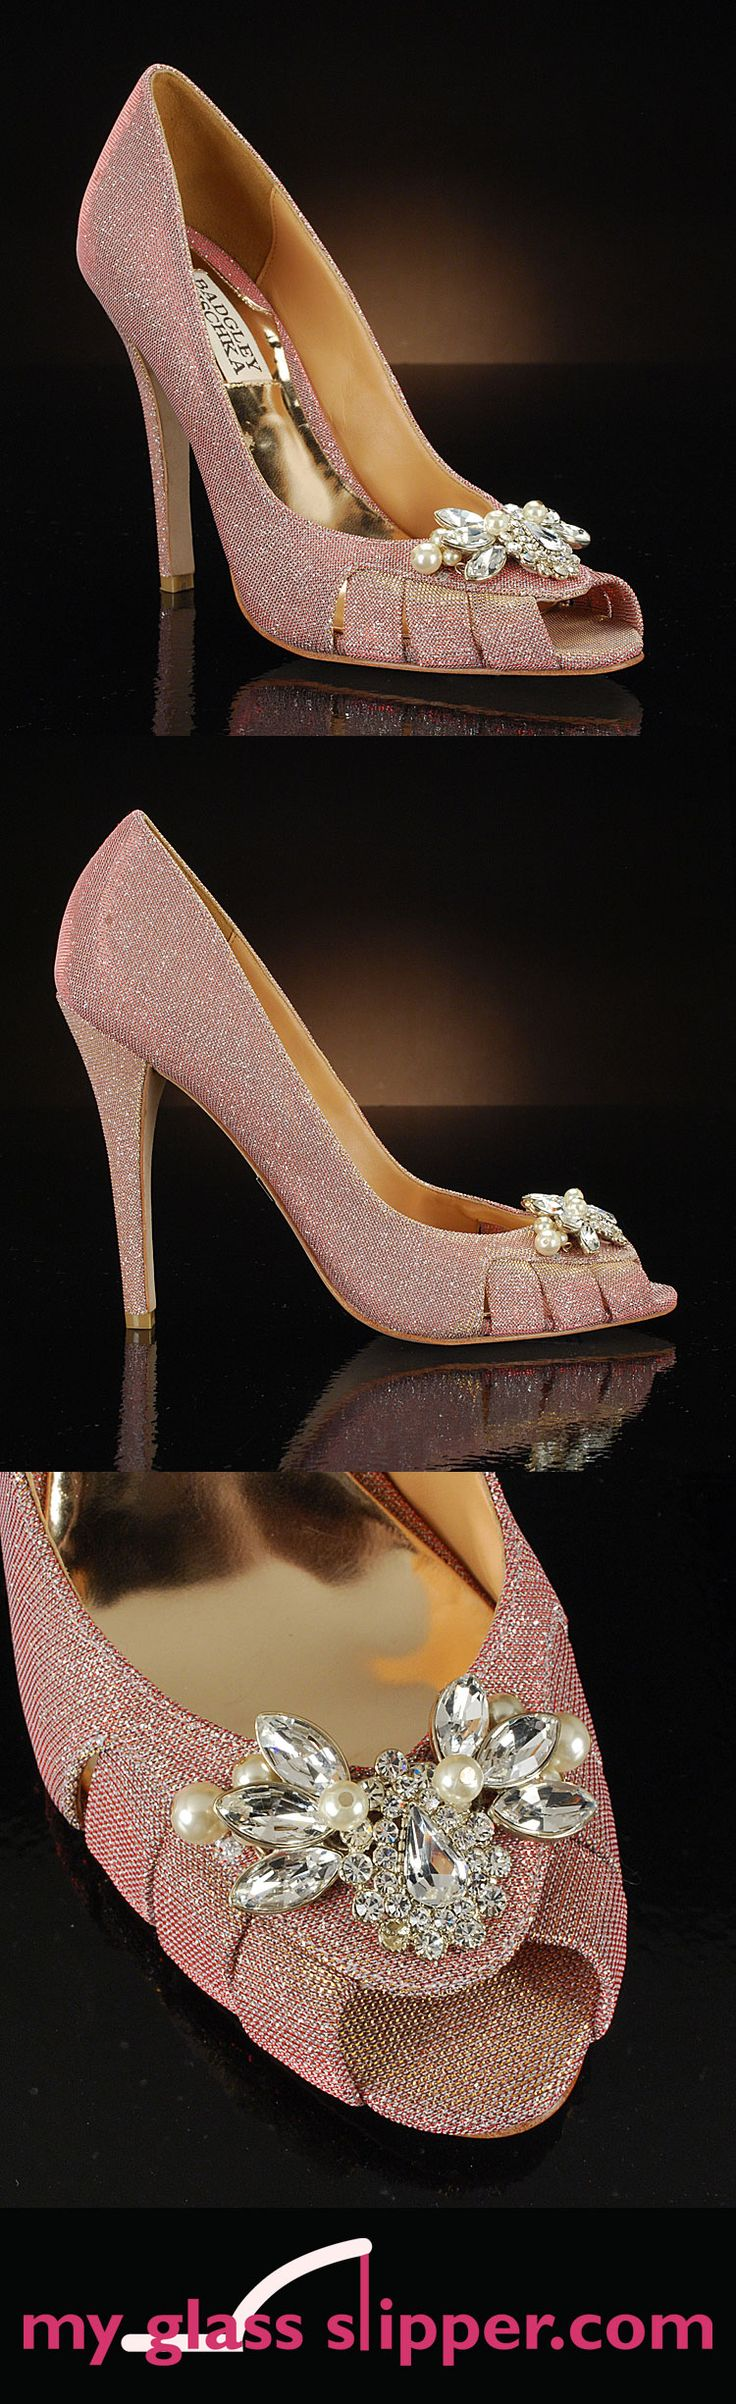 MONIQUE in ROSE GOLD by BADGLEY MISCHKA: A hint of blush pink and a hint of gold shimmer combine to make a glamorous, elegant sparkly wedding shoe. Rose gold wedding shoes are a chic trend not to be missed! Feminine and elegant. $265     http://www.myglassslipper.com/wedding-shoes/badgley-mischka/monique-rose-gold-7941